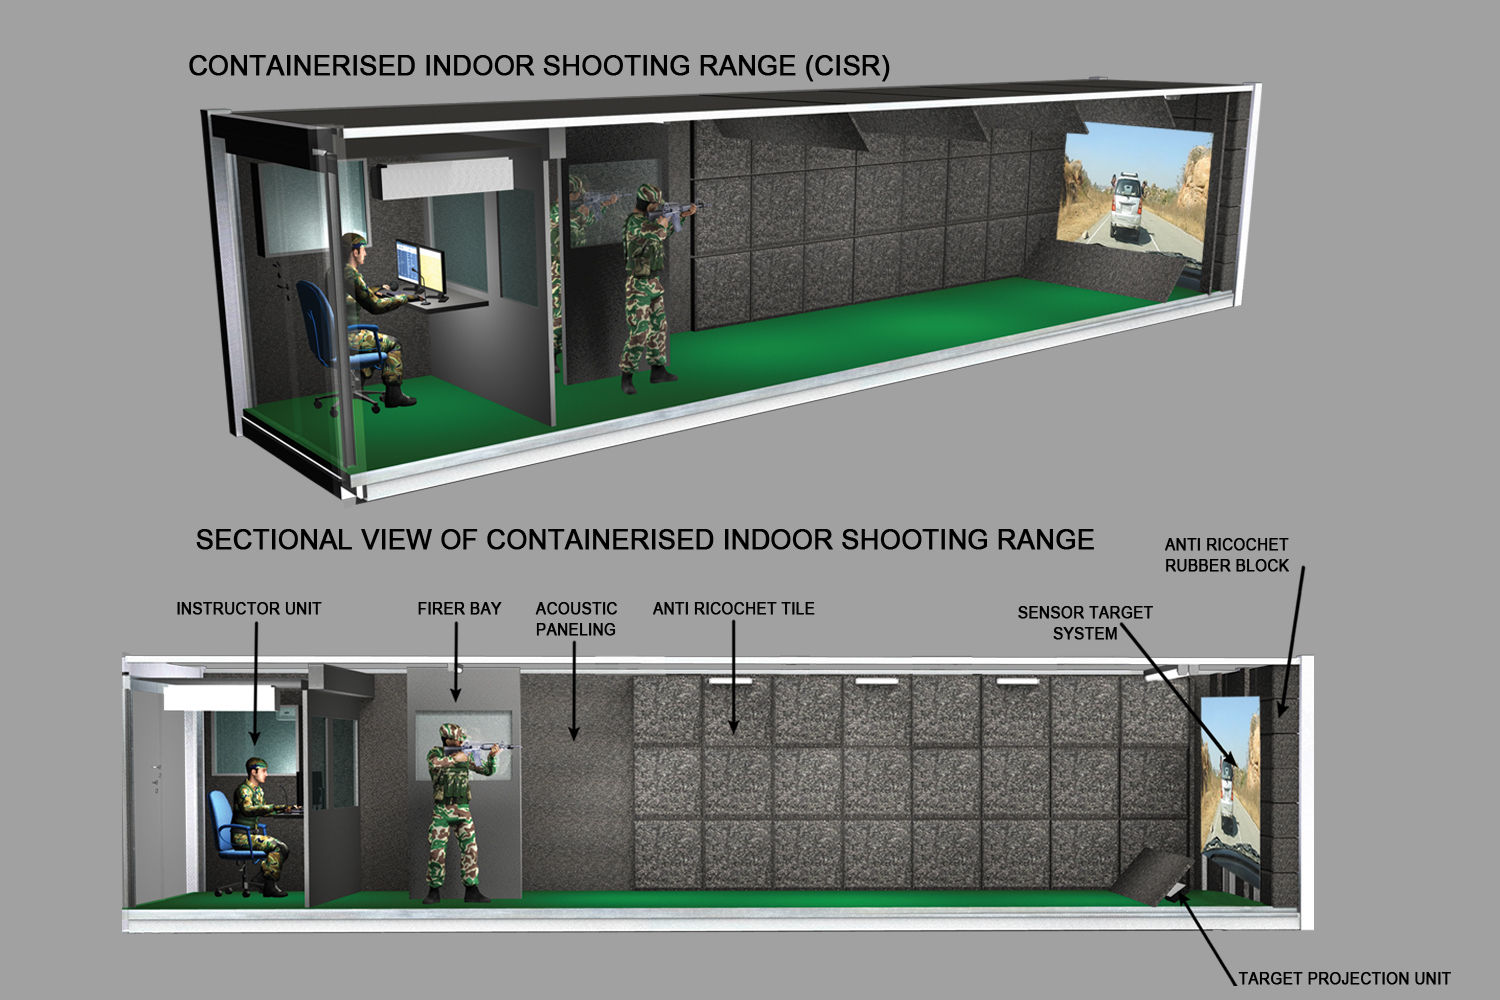 Live Ranges - Containerised Indoor Shooting Range (CISR)